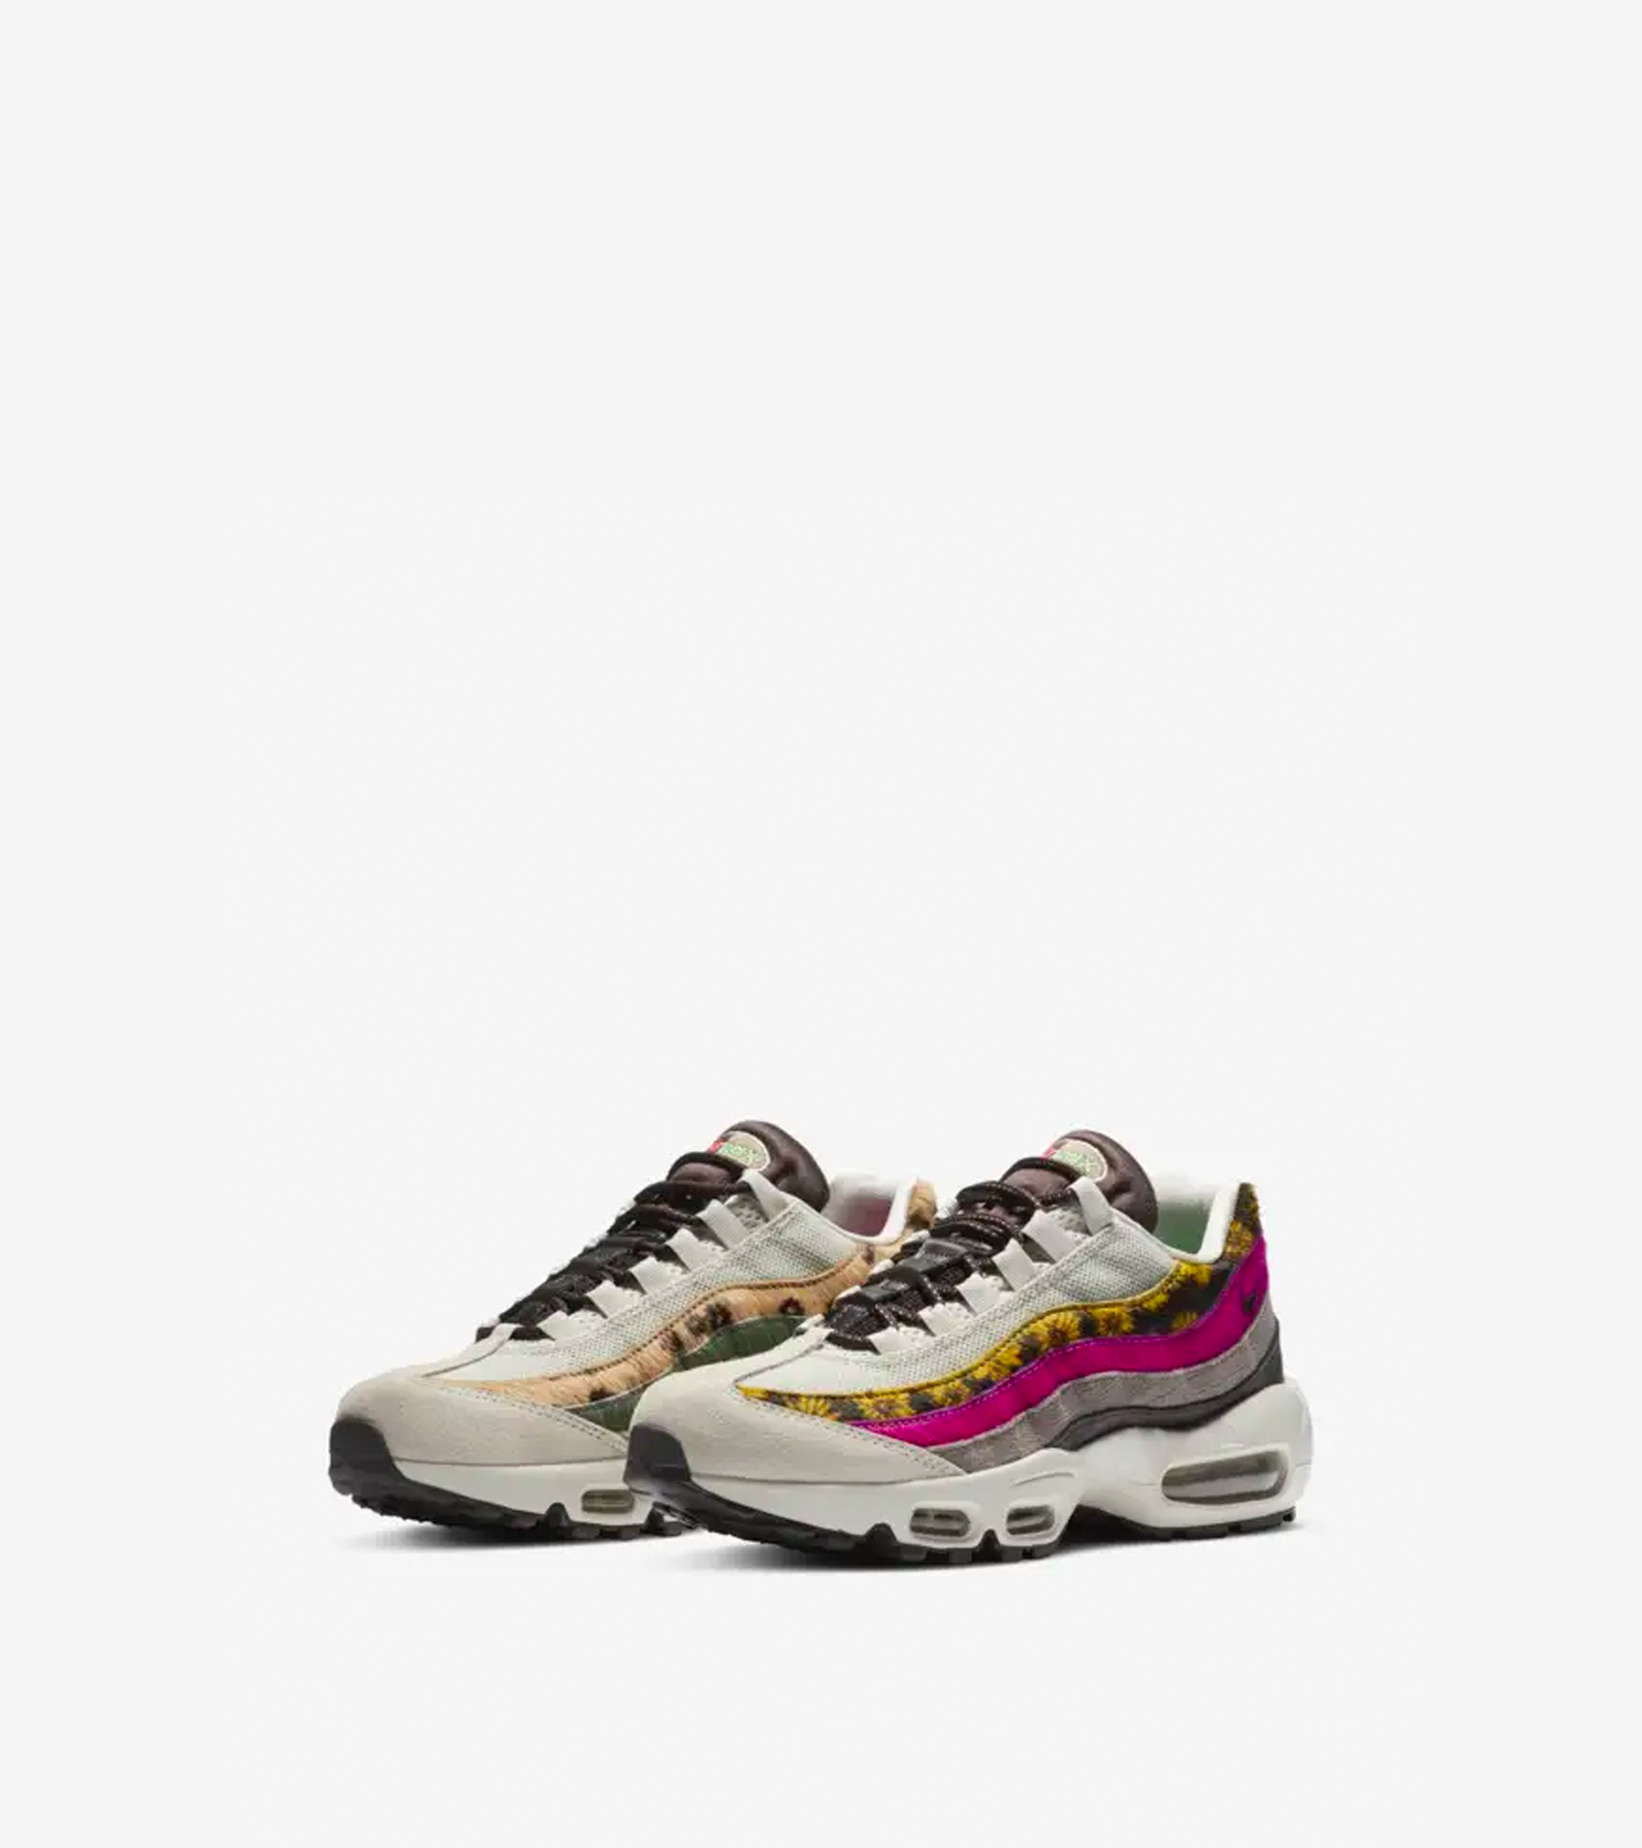 "WMNS Air Max 95 PRM ""Daisy Chain""-1"